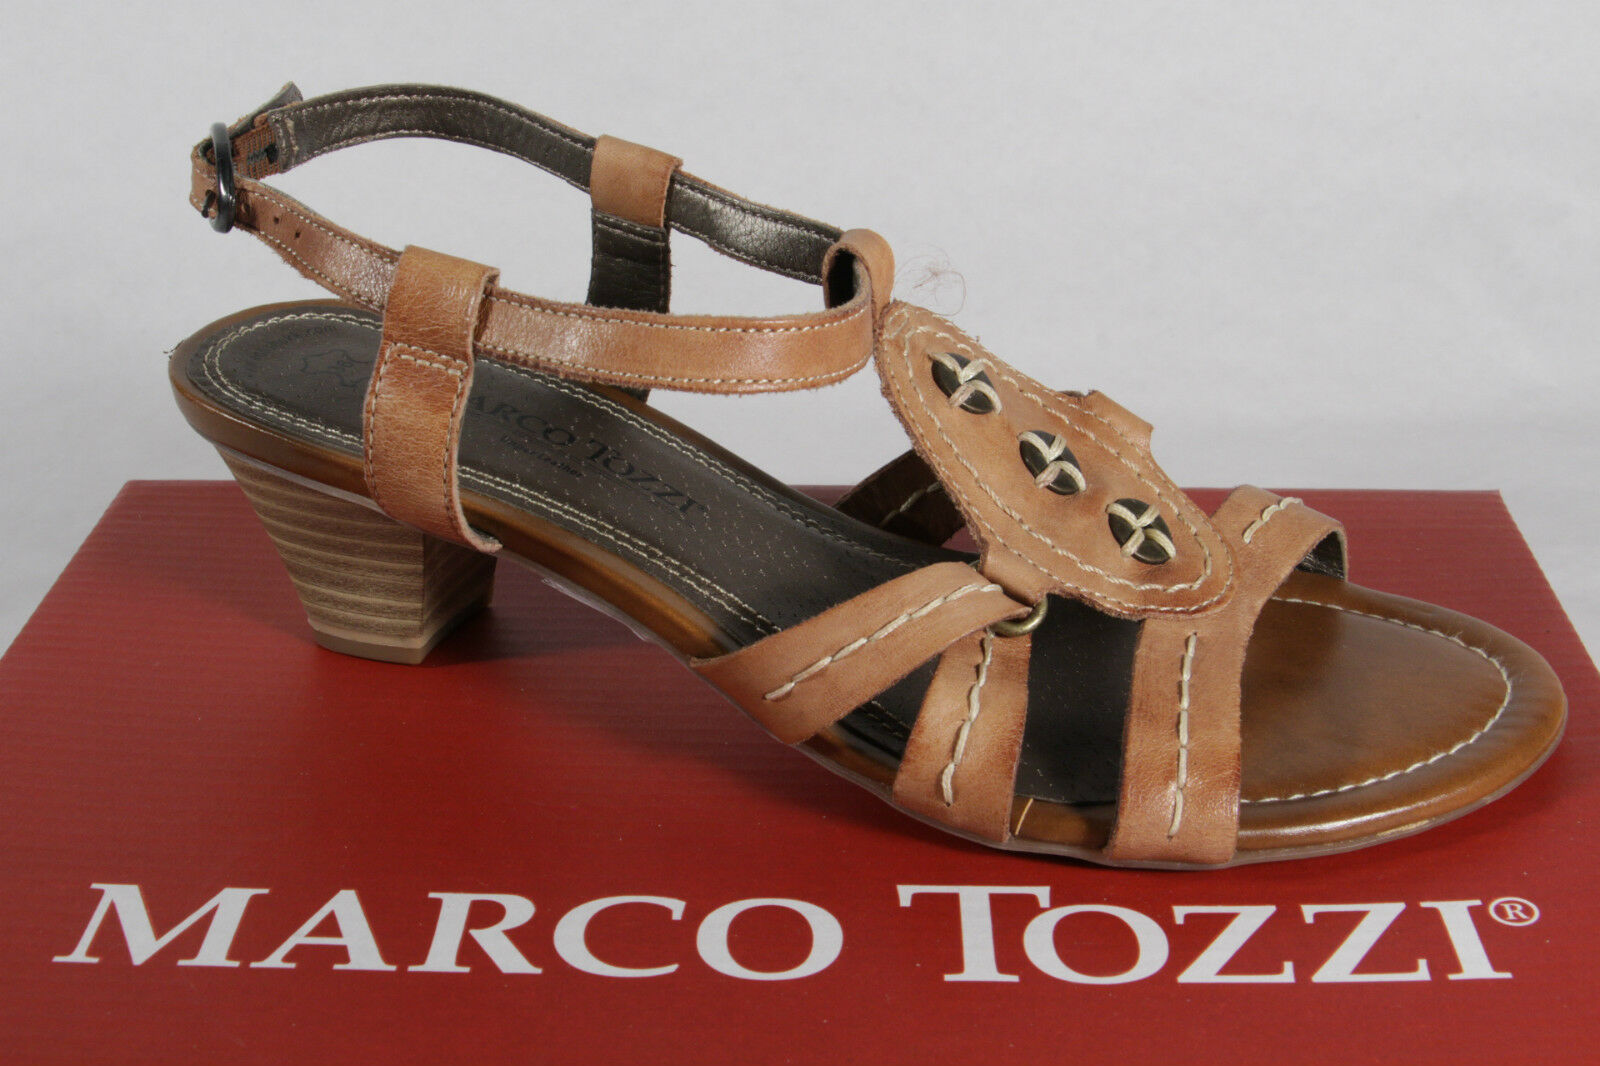 Marcotozzi Ladies Sandals Sneakers Genuine Leather Brown New